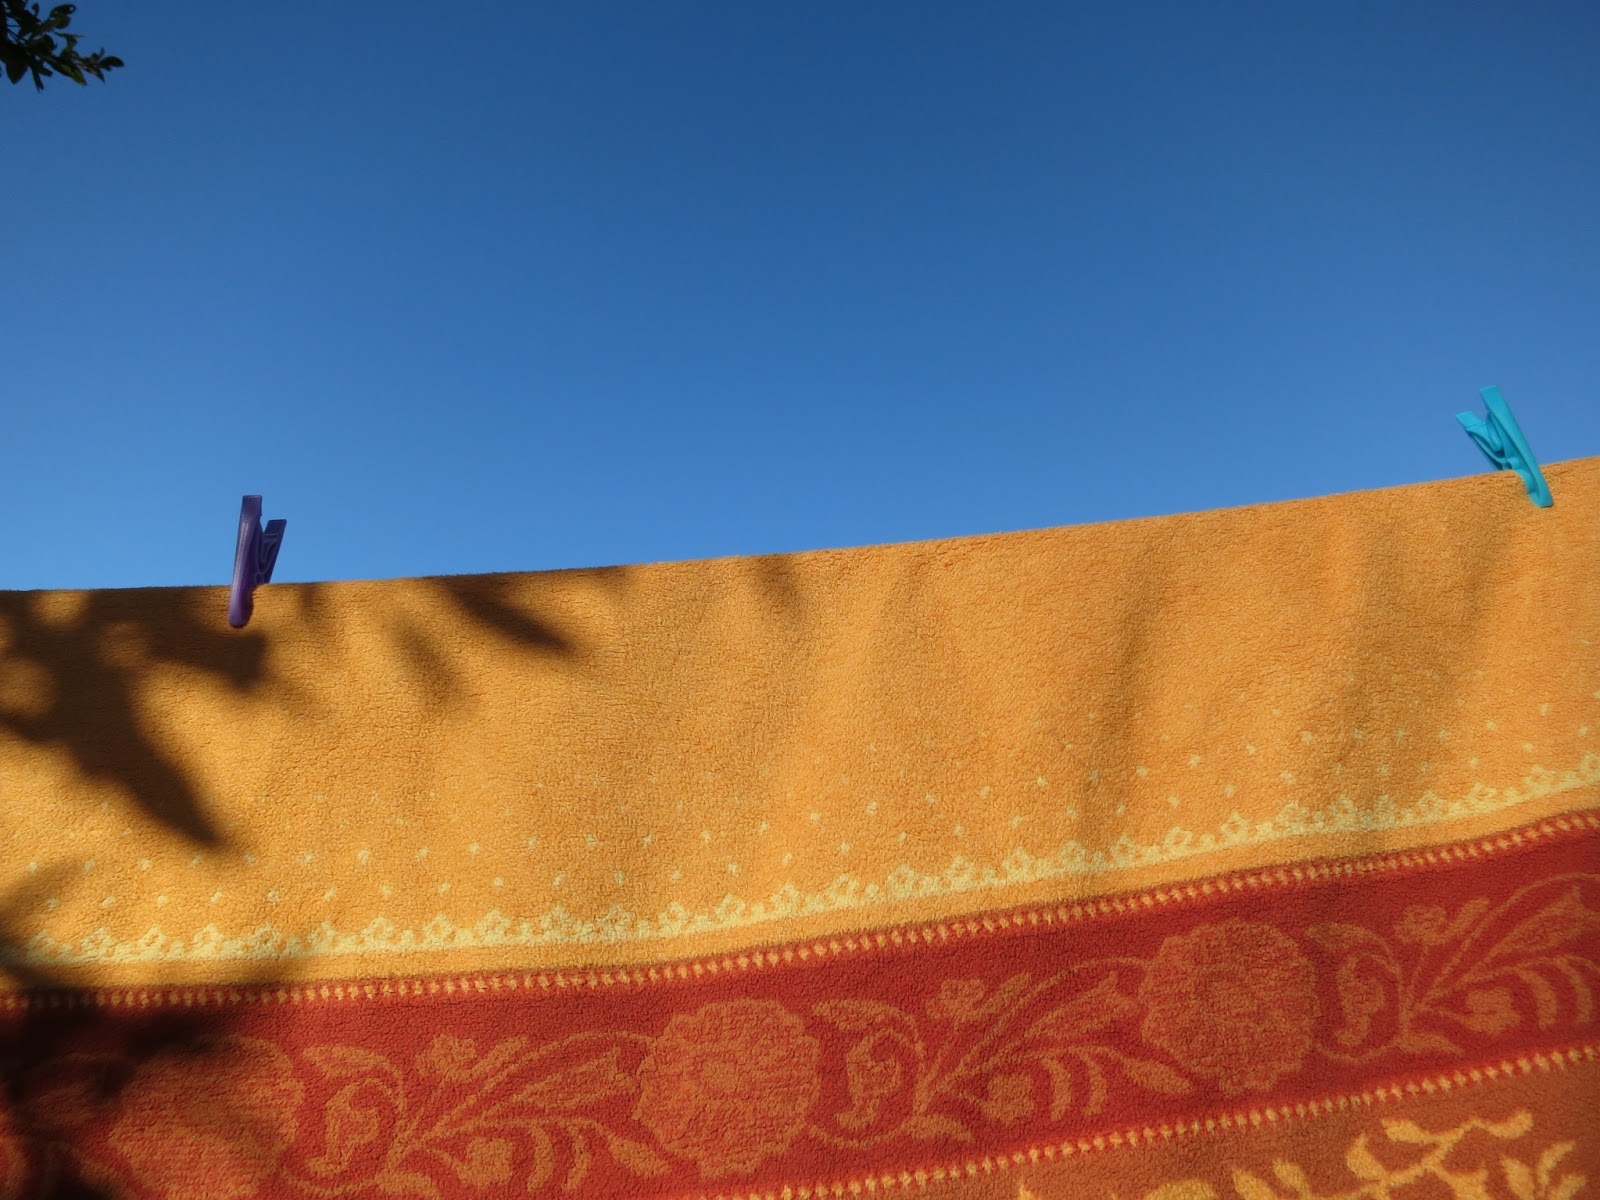 Orange and Gold blanket on line with blue and purple pegs, blue sky and a few green leaves.